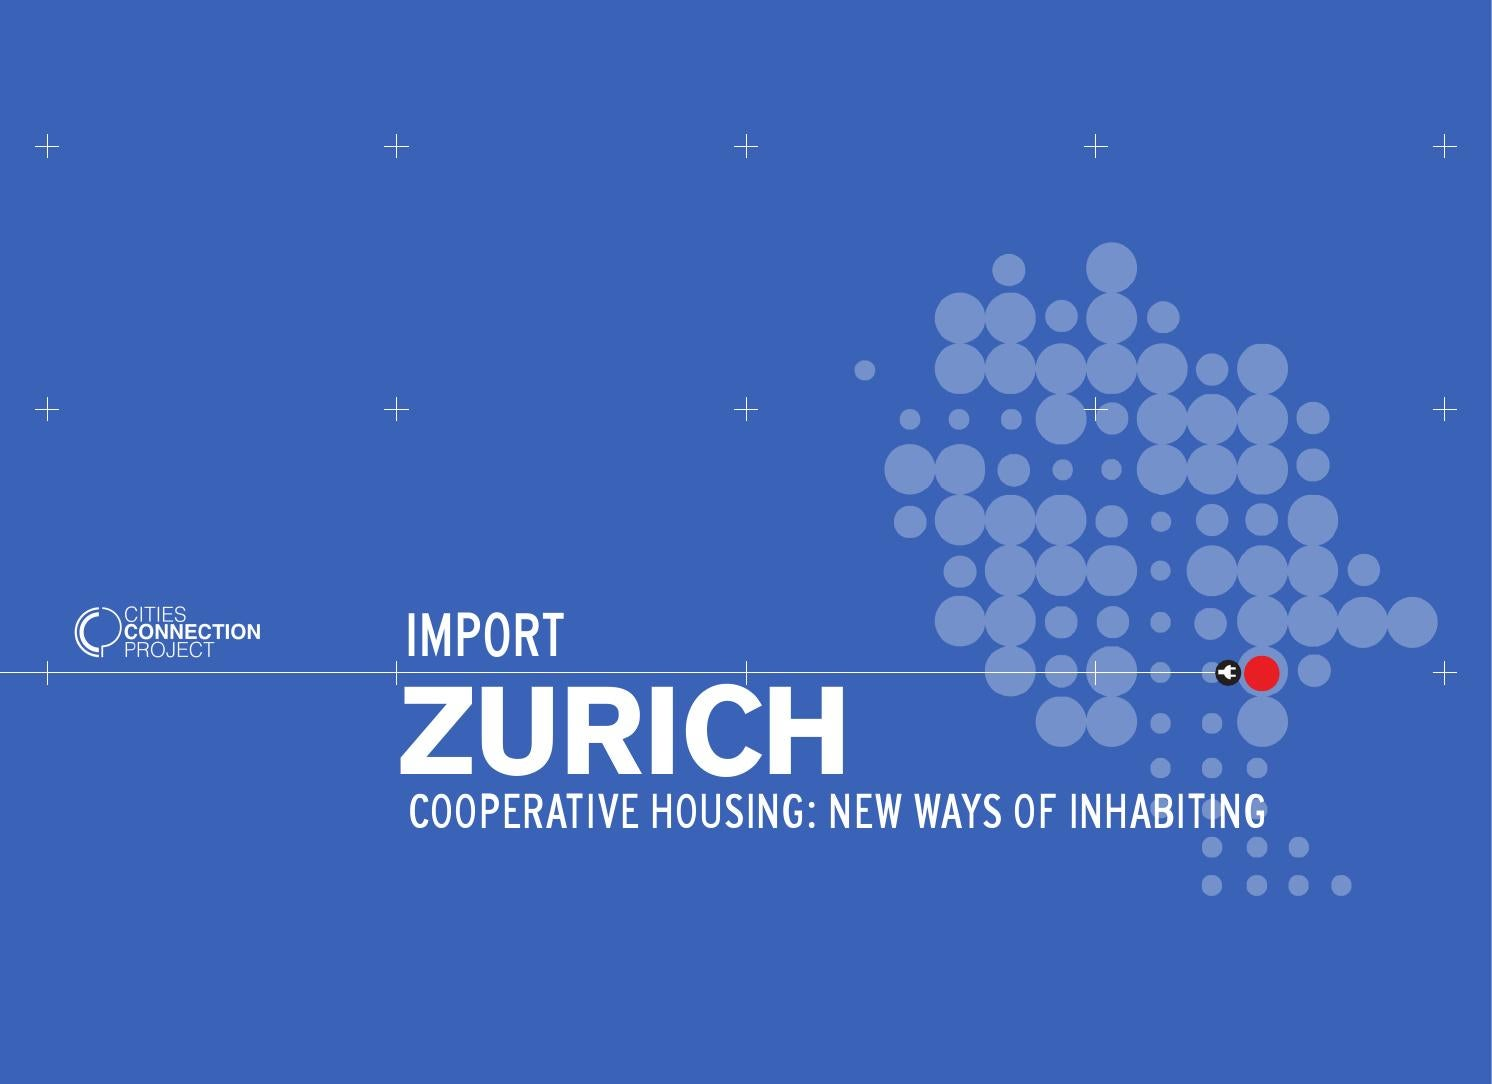 import zurich. cooperative housing: new ways of inhabiting by dpr, Hause ideen